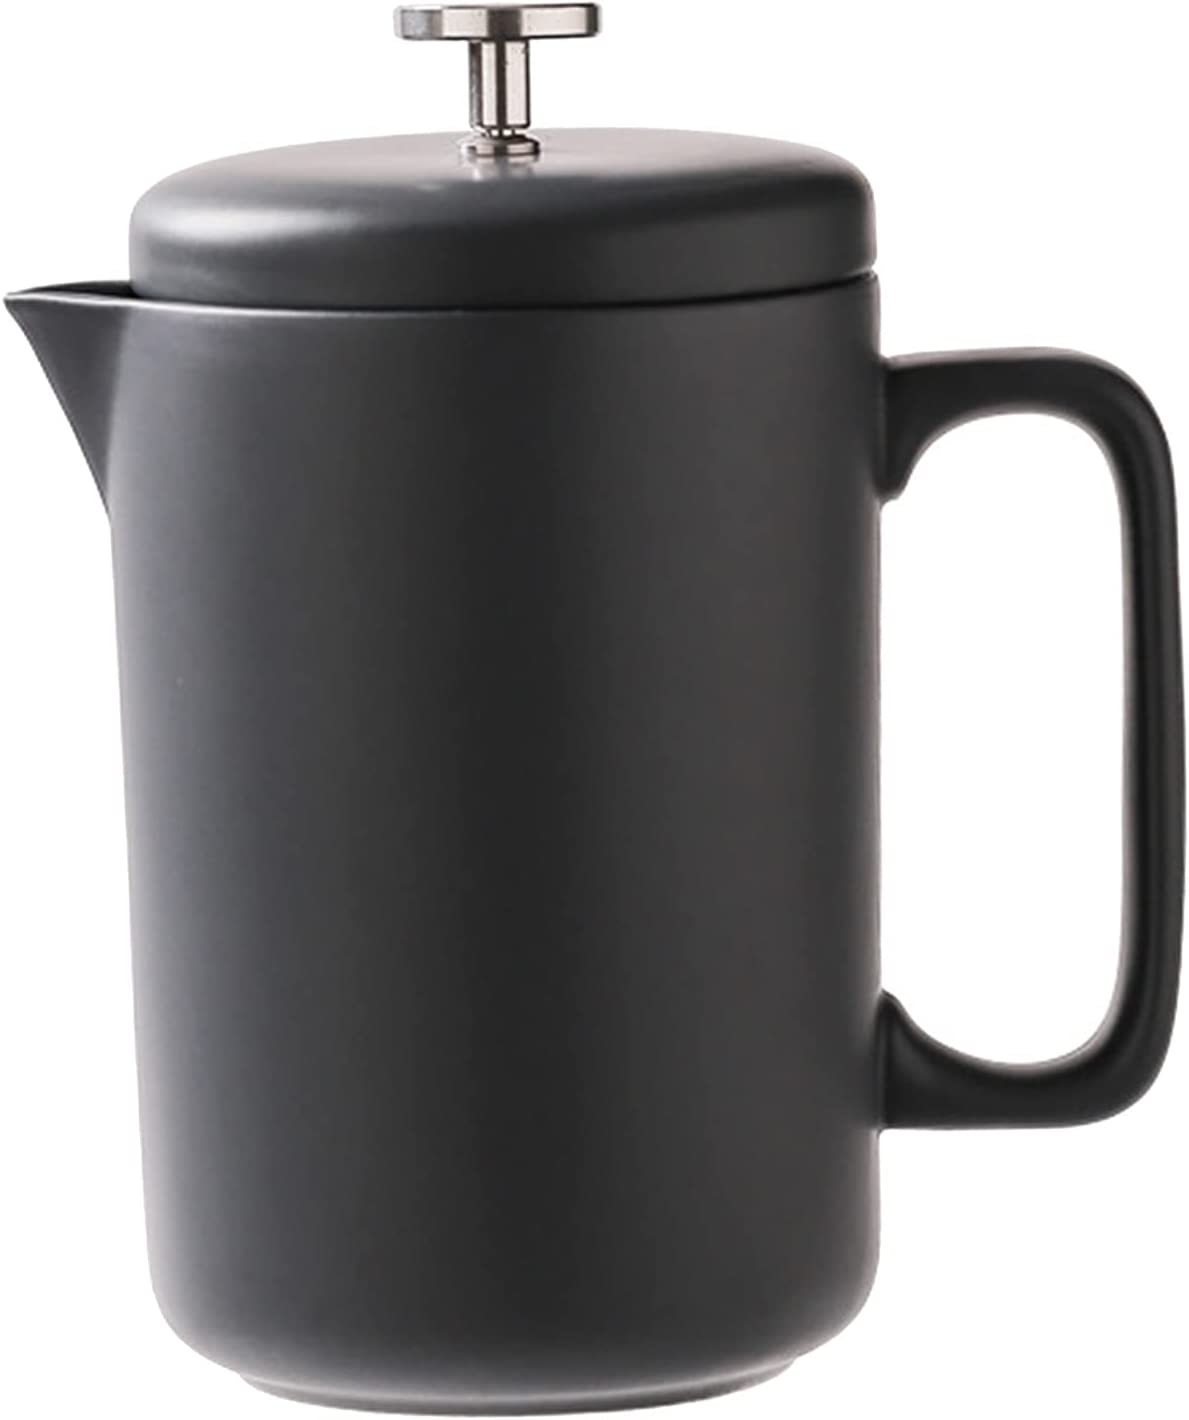 Baoblaze Durable Kitchen French Press New arrival Coff Coffee Cheap mail order specialty store Good for Maker